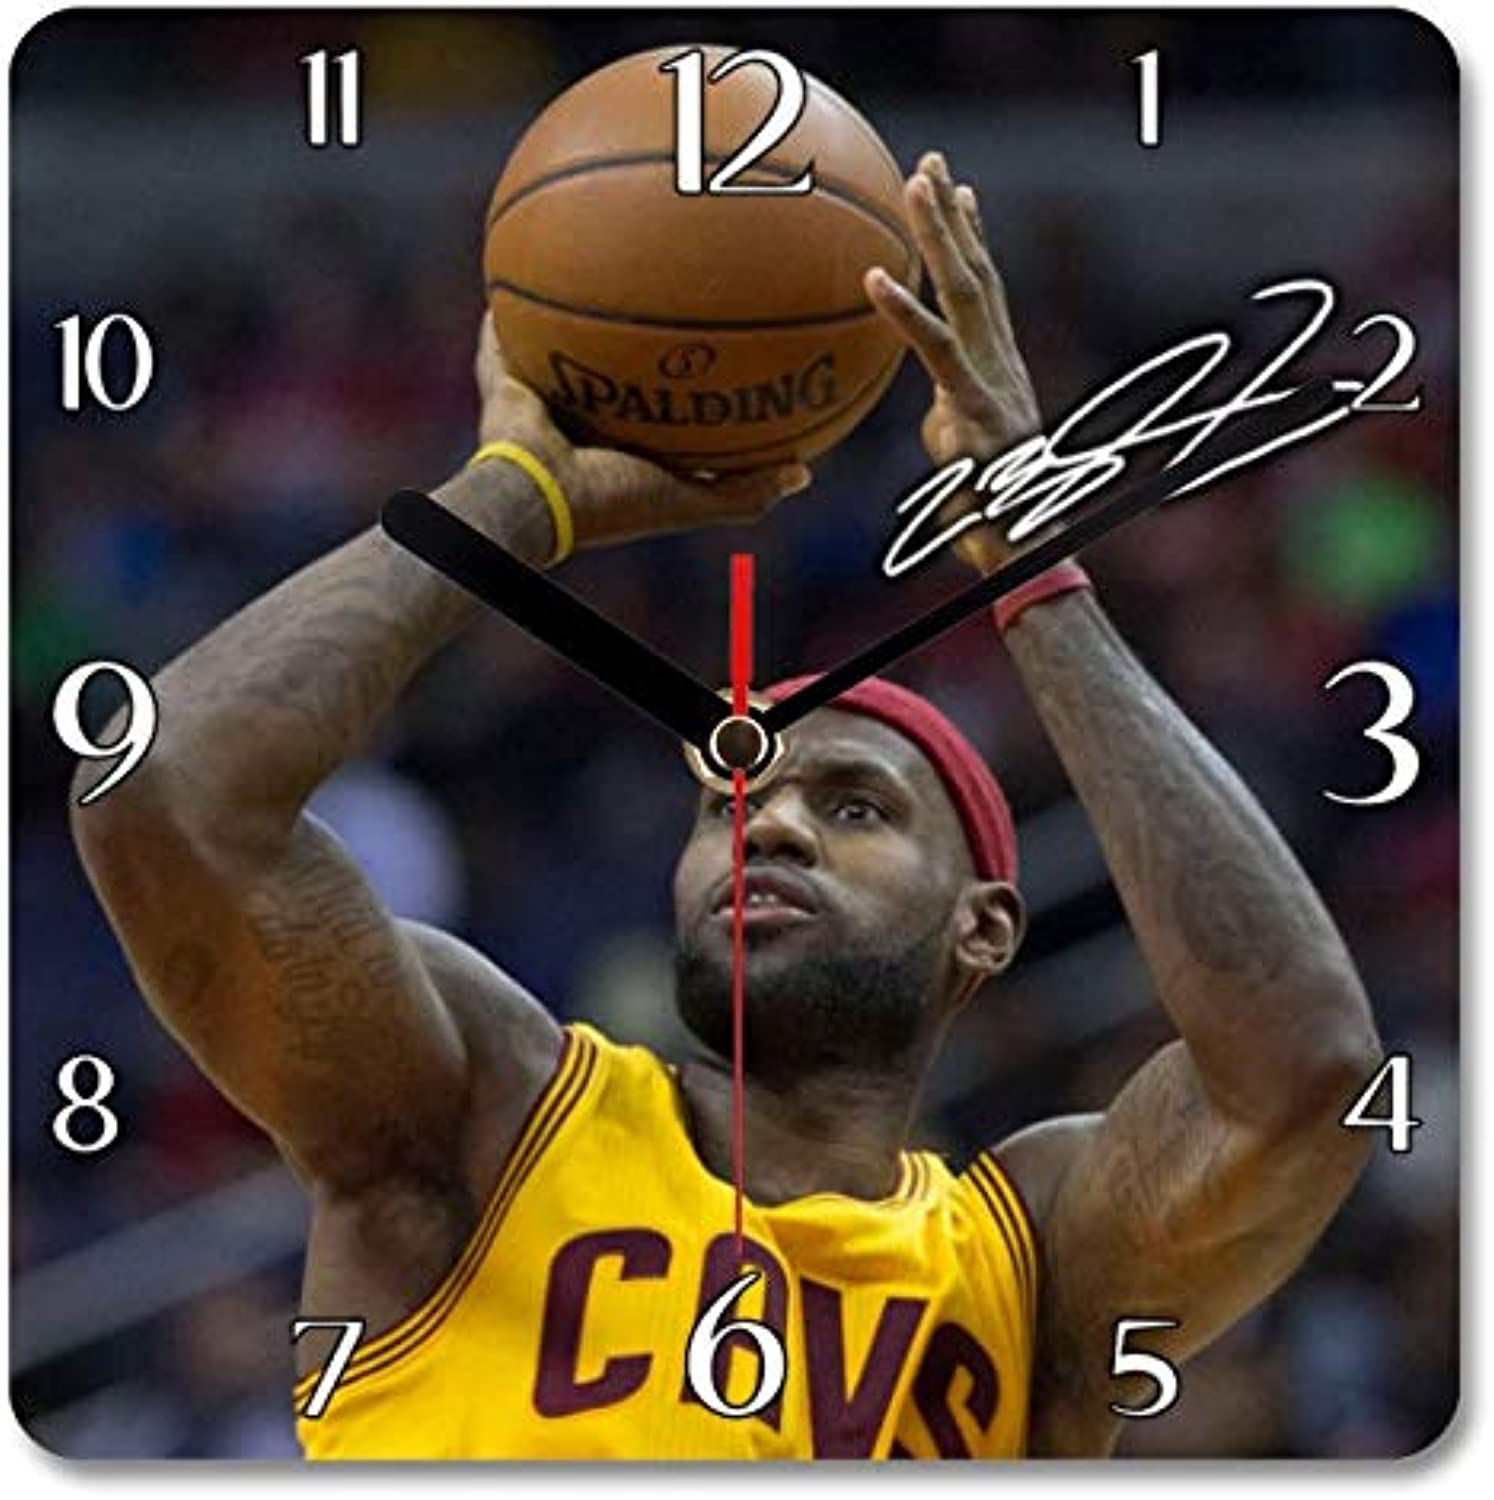 Lebron James  Cleveland Cavaliers  NBA 1 Personalised Gift Square Wall Clock Autograph Print (19 x 19cm) (No Personalised Message)